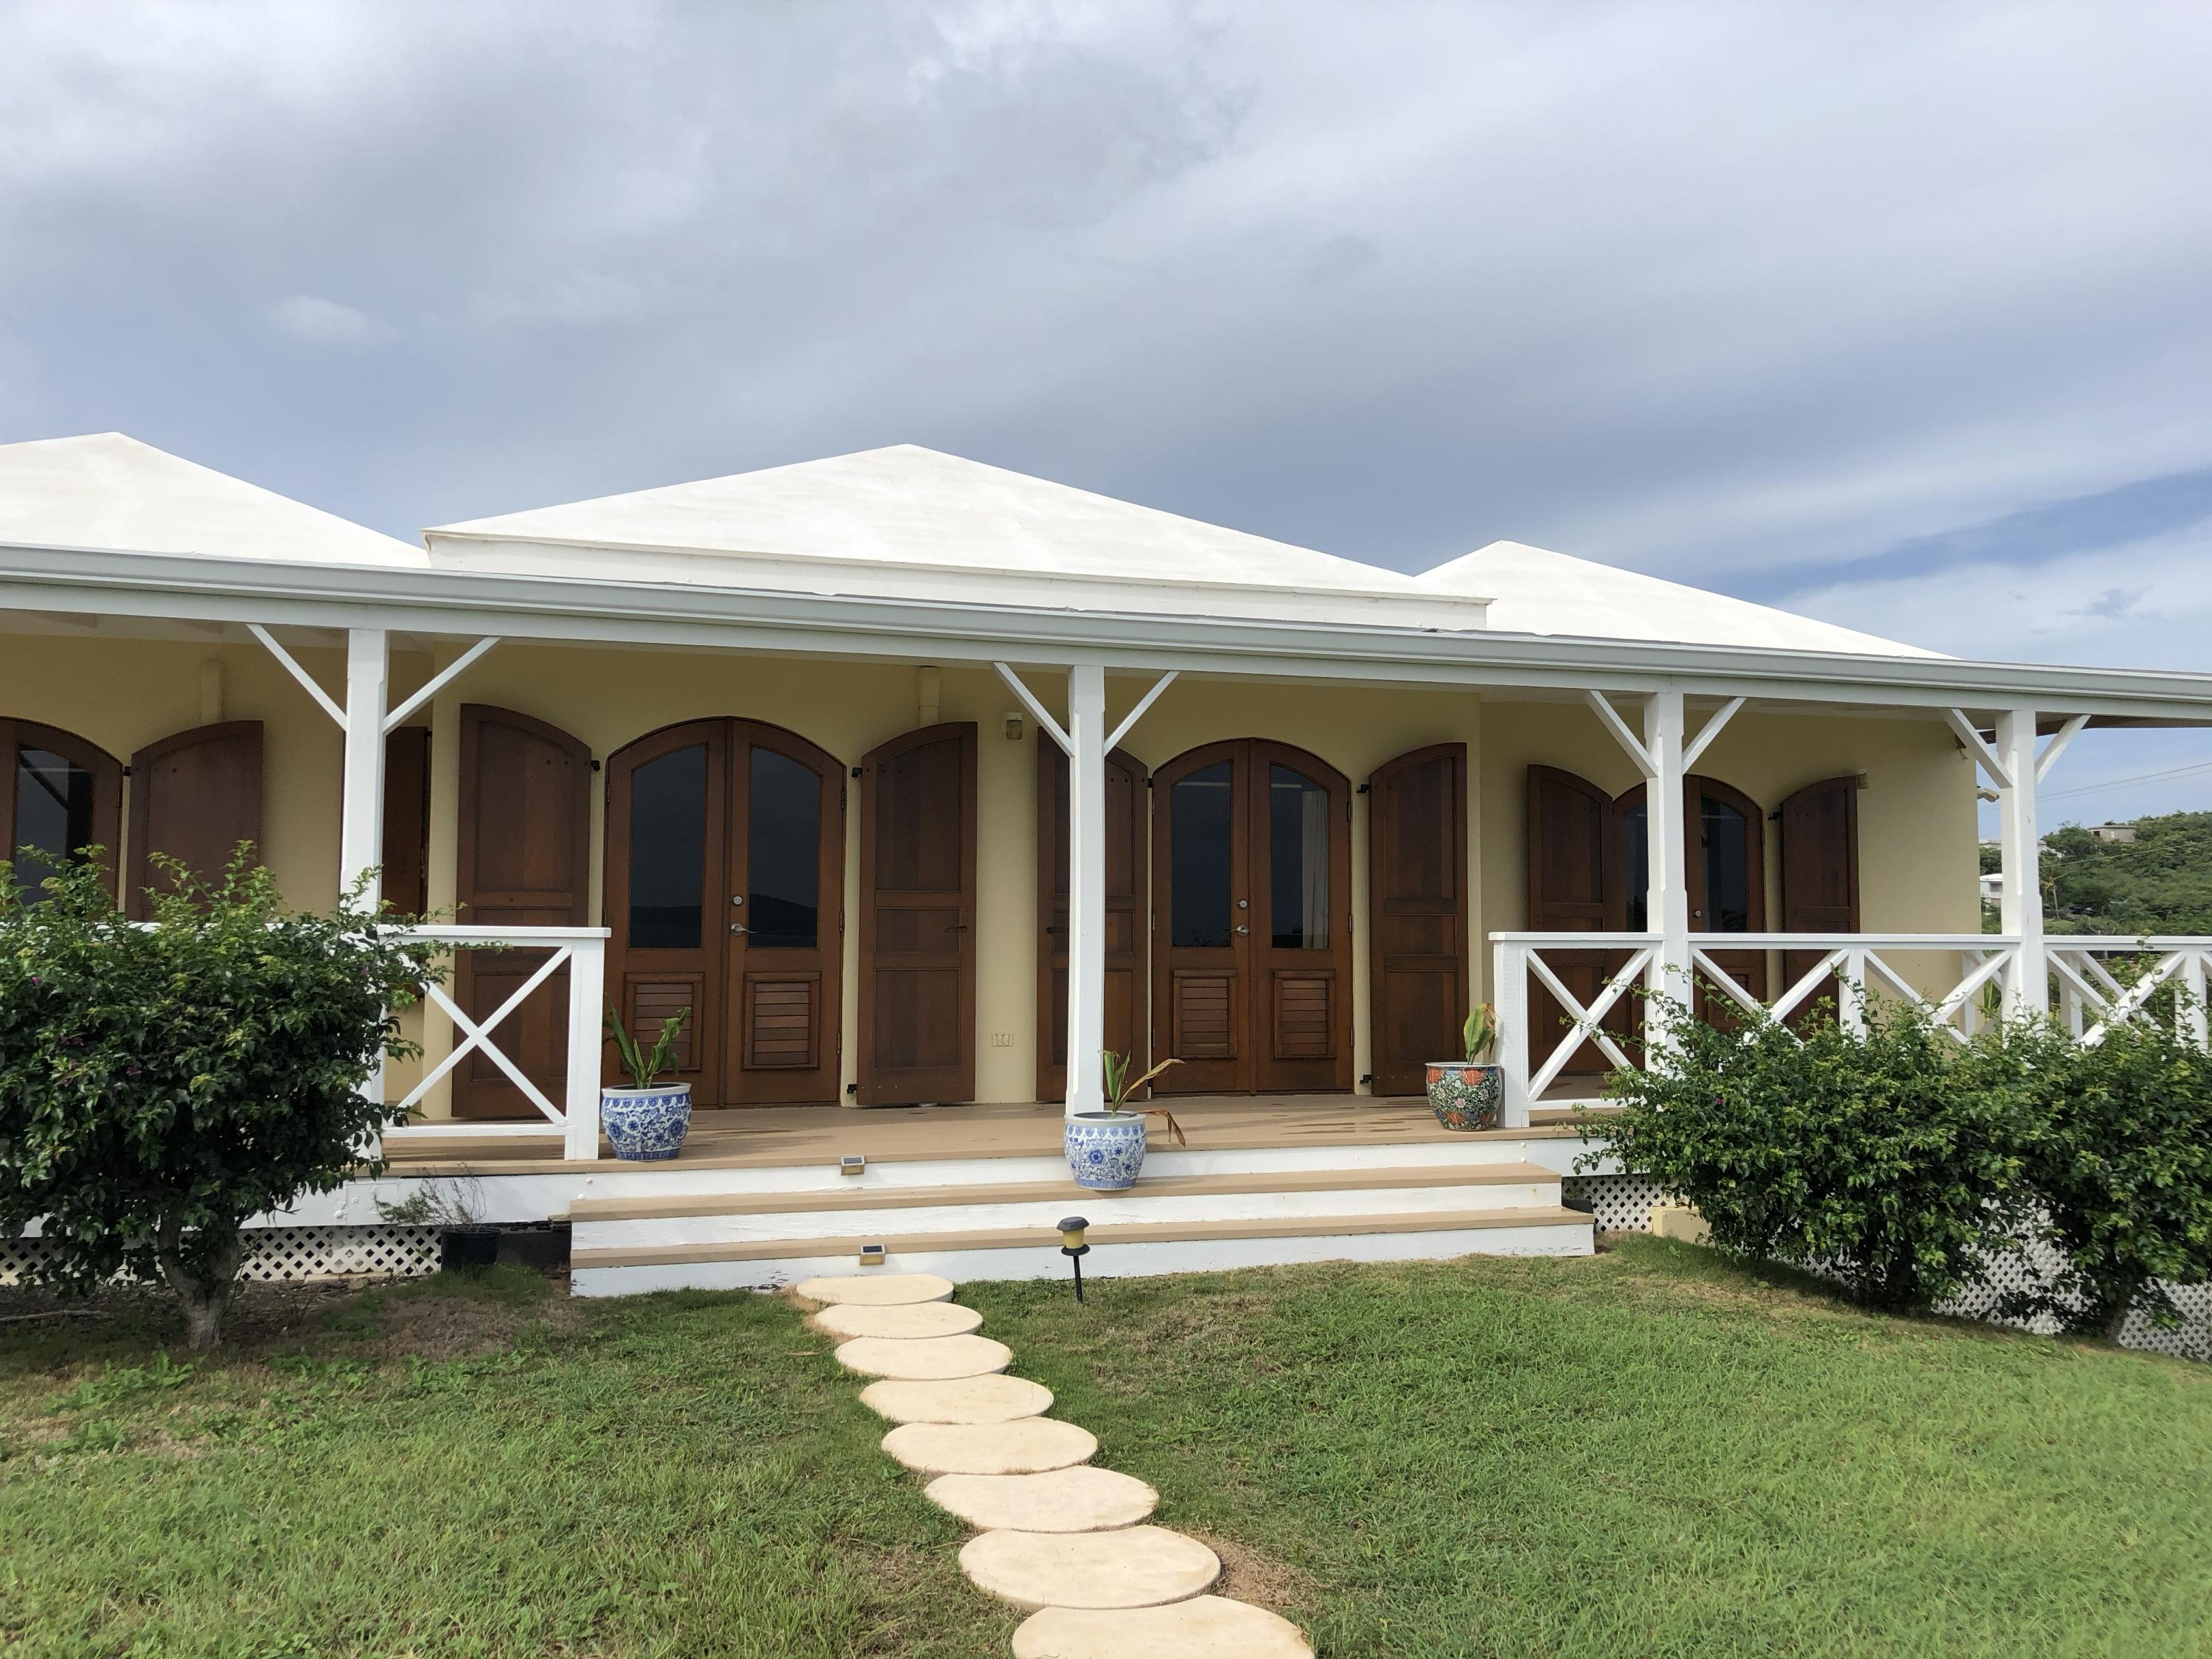 Single Family Home for Sale at 77 Green Cay EA 77 Green Cay EA St Croix, Virgin Islands 00820 United States Virgin Islands